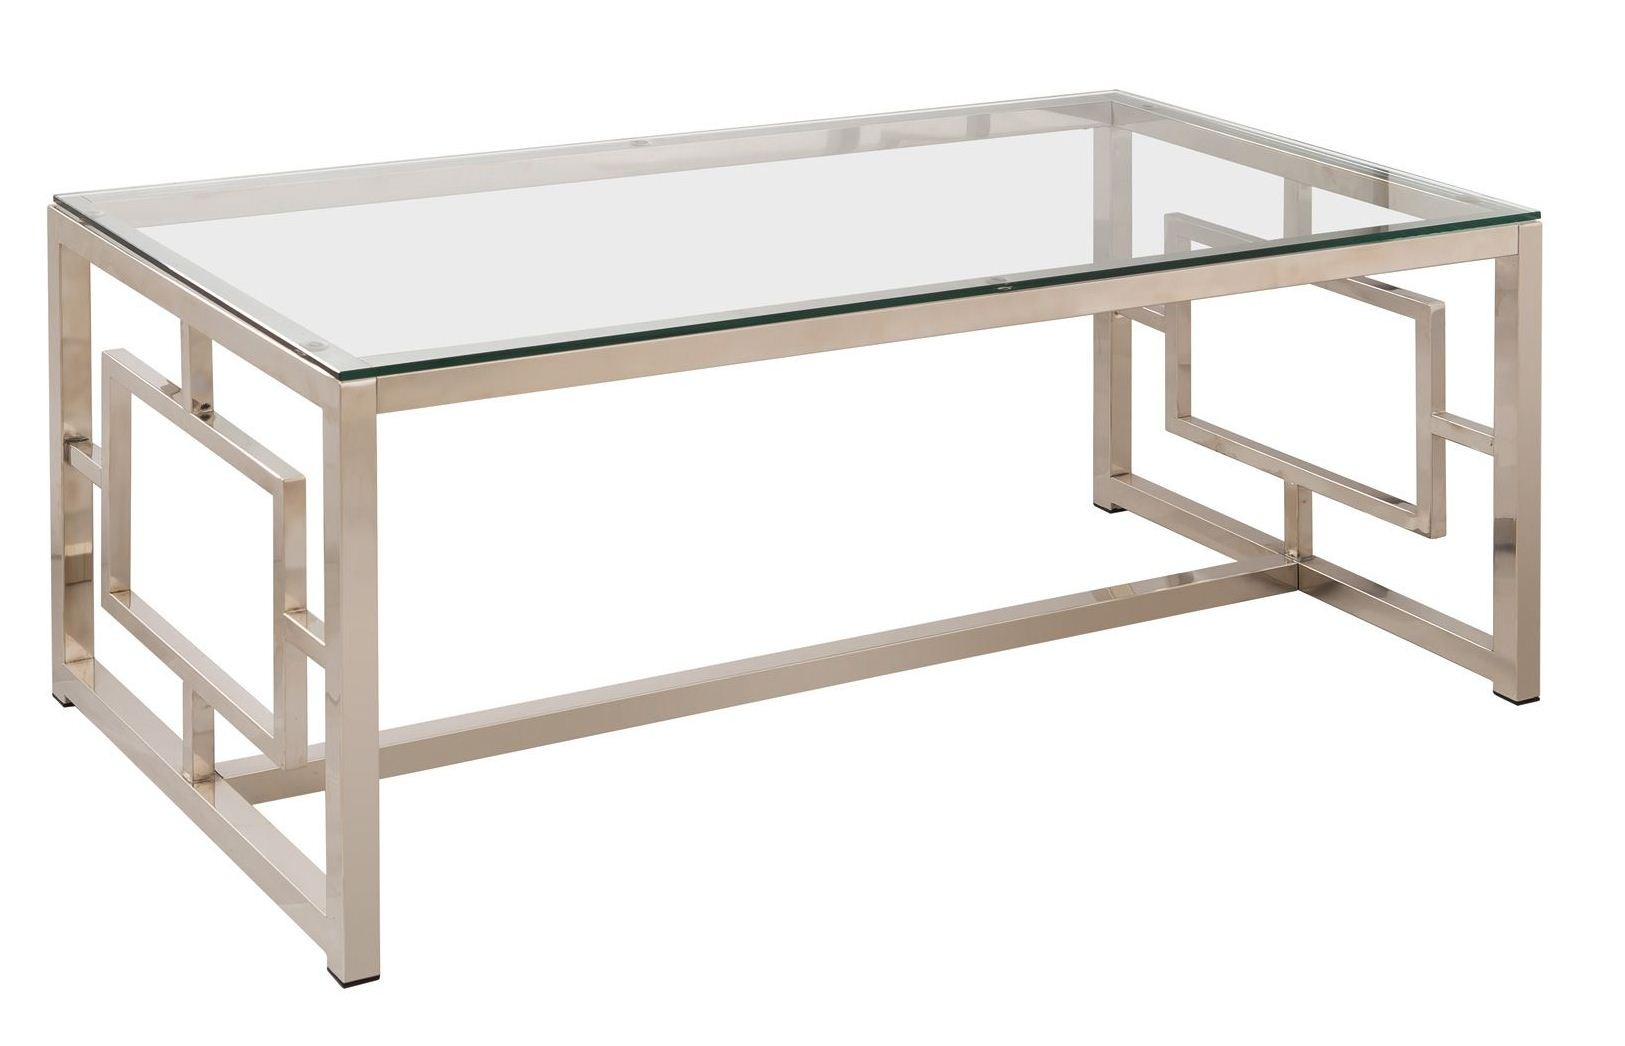 703738 satin nickel coffee table from coaster 703738 for K furniture coffee table